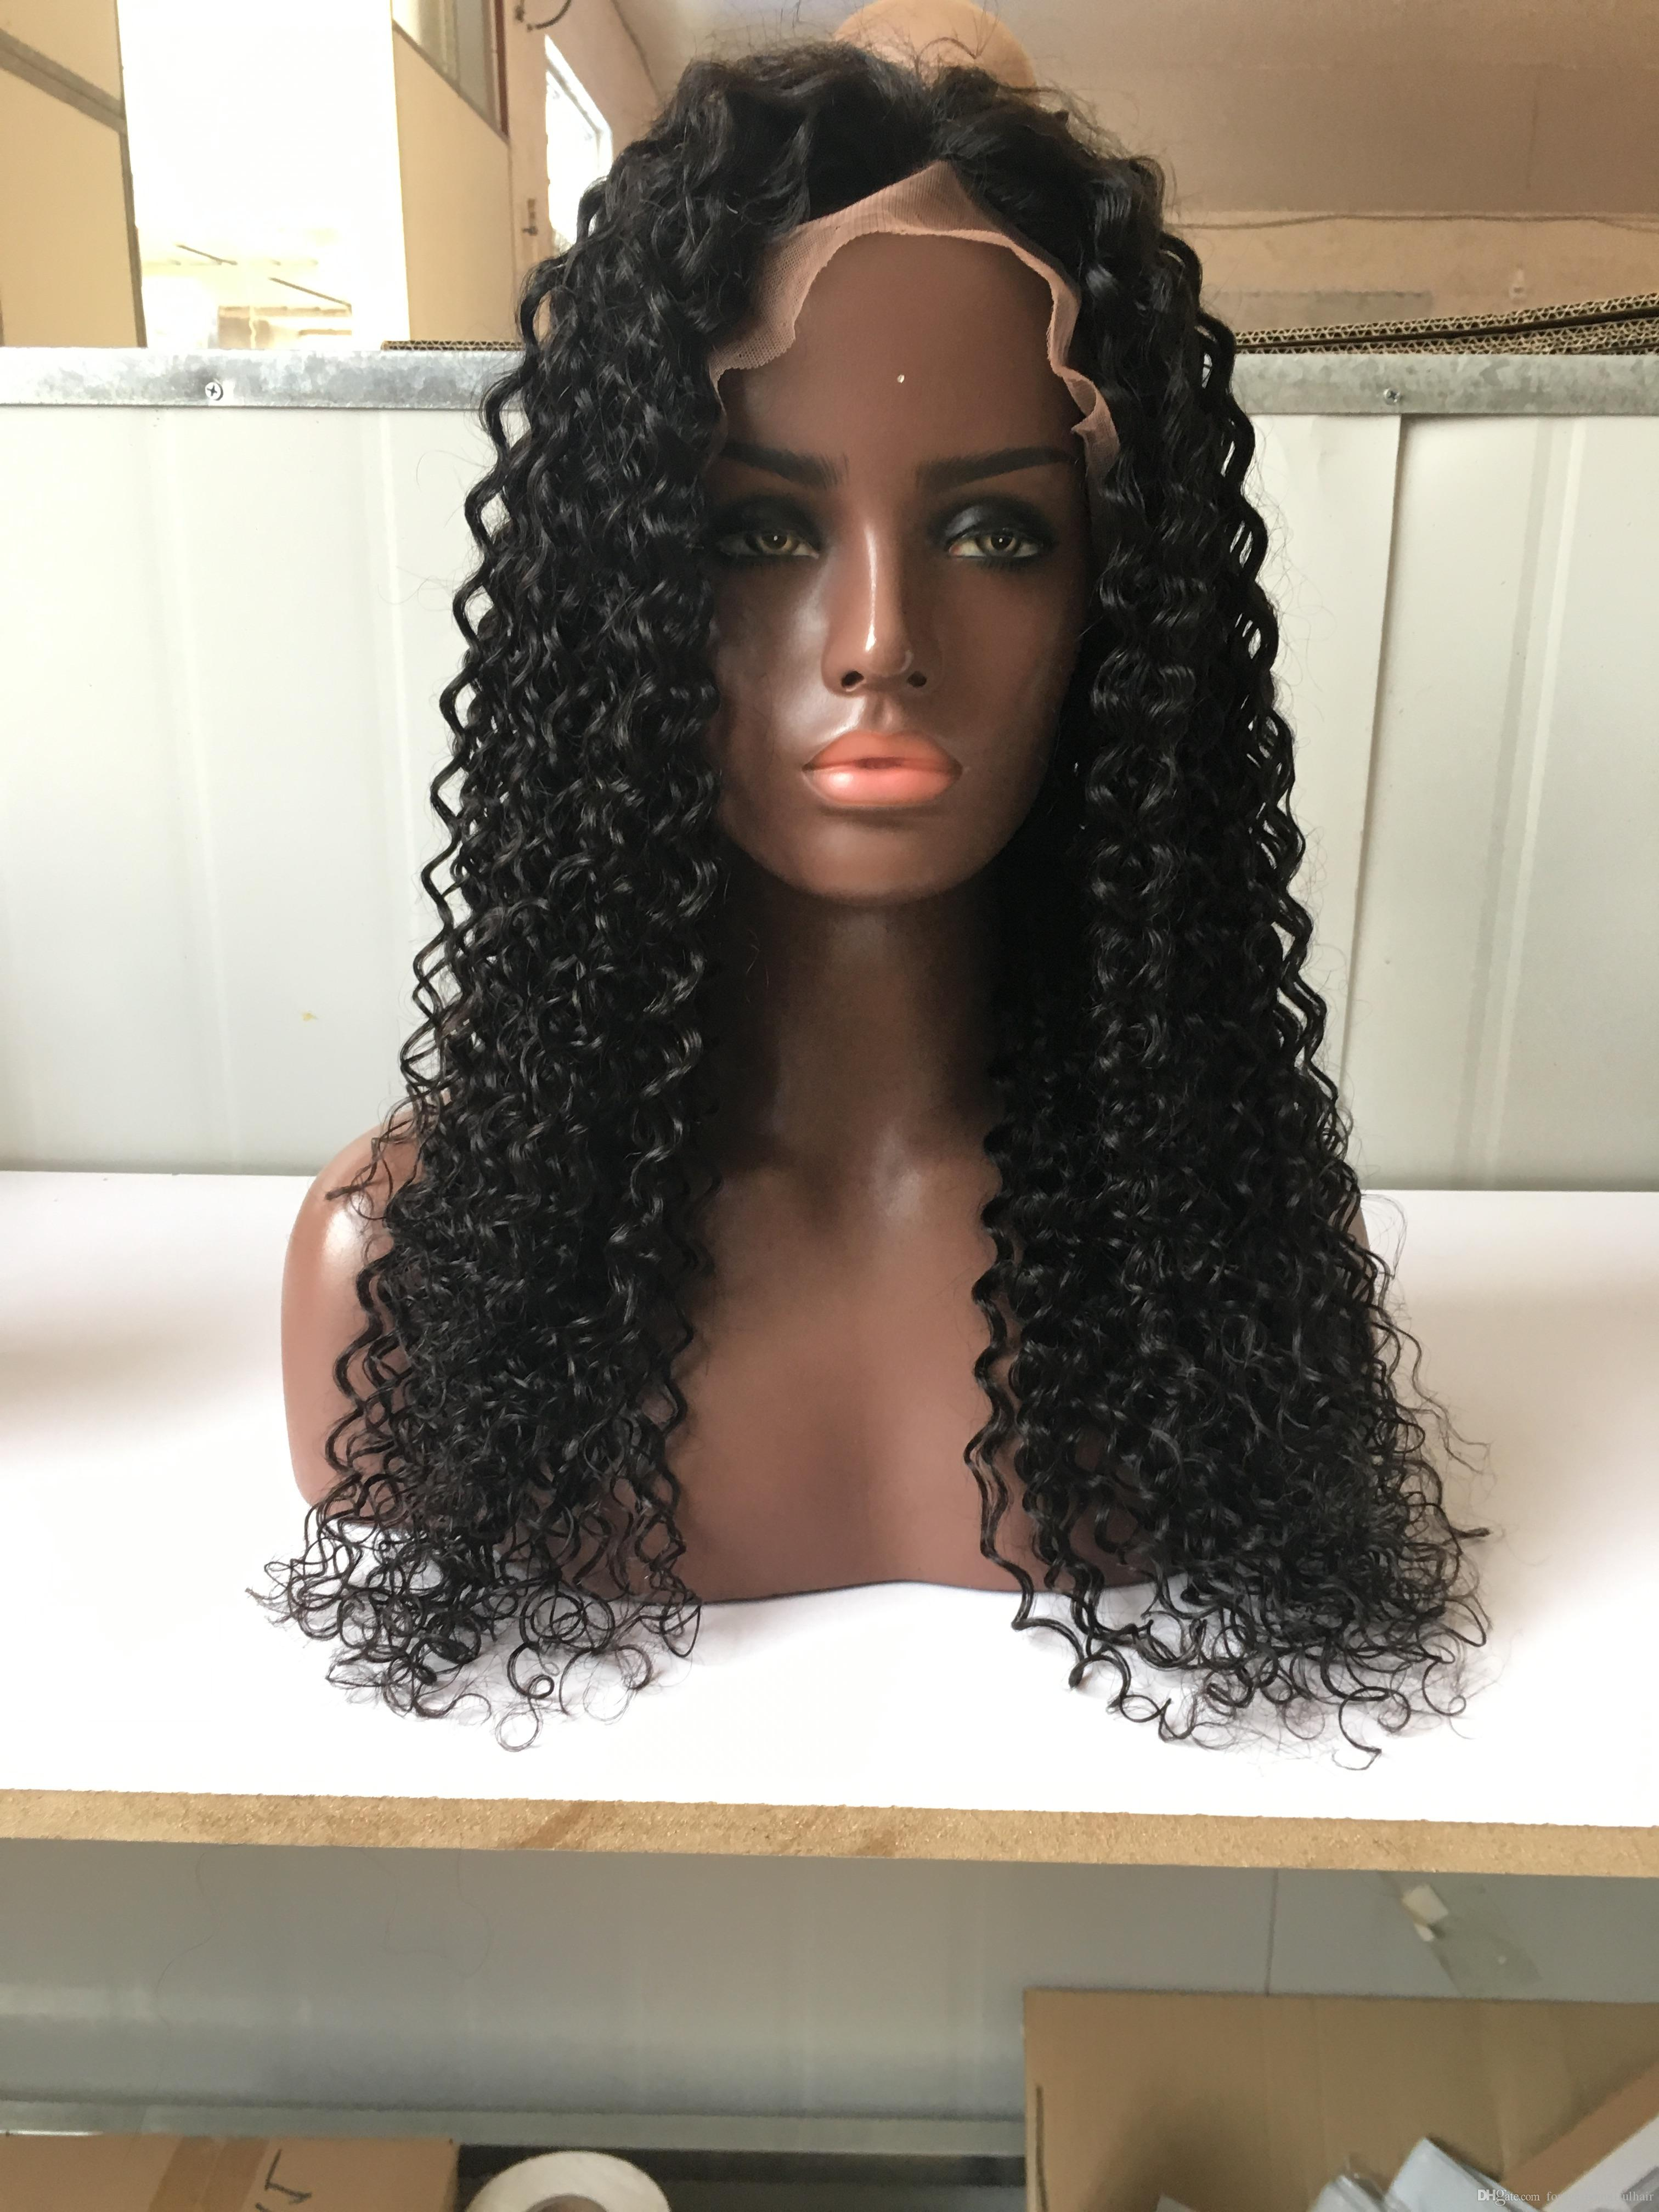 Lace Front Wigs water wave Full Lace Wigs deep curly Baby Hair Brazilian Bleach Knots Unprocessed 100% Virgin Human Hair